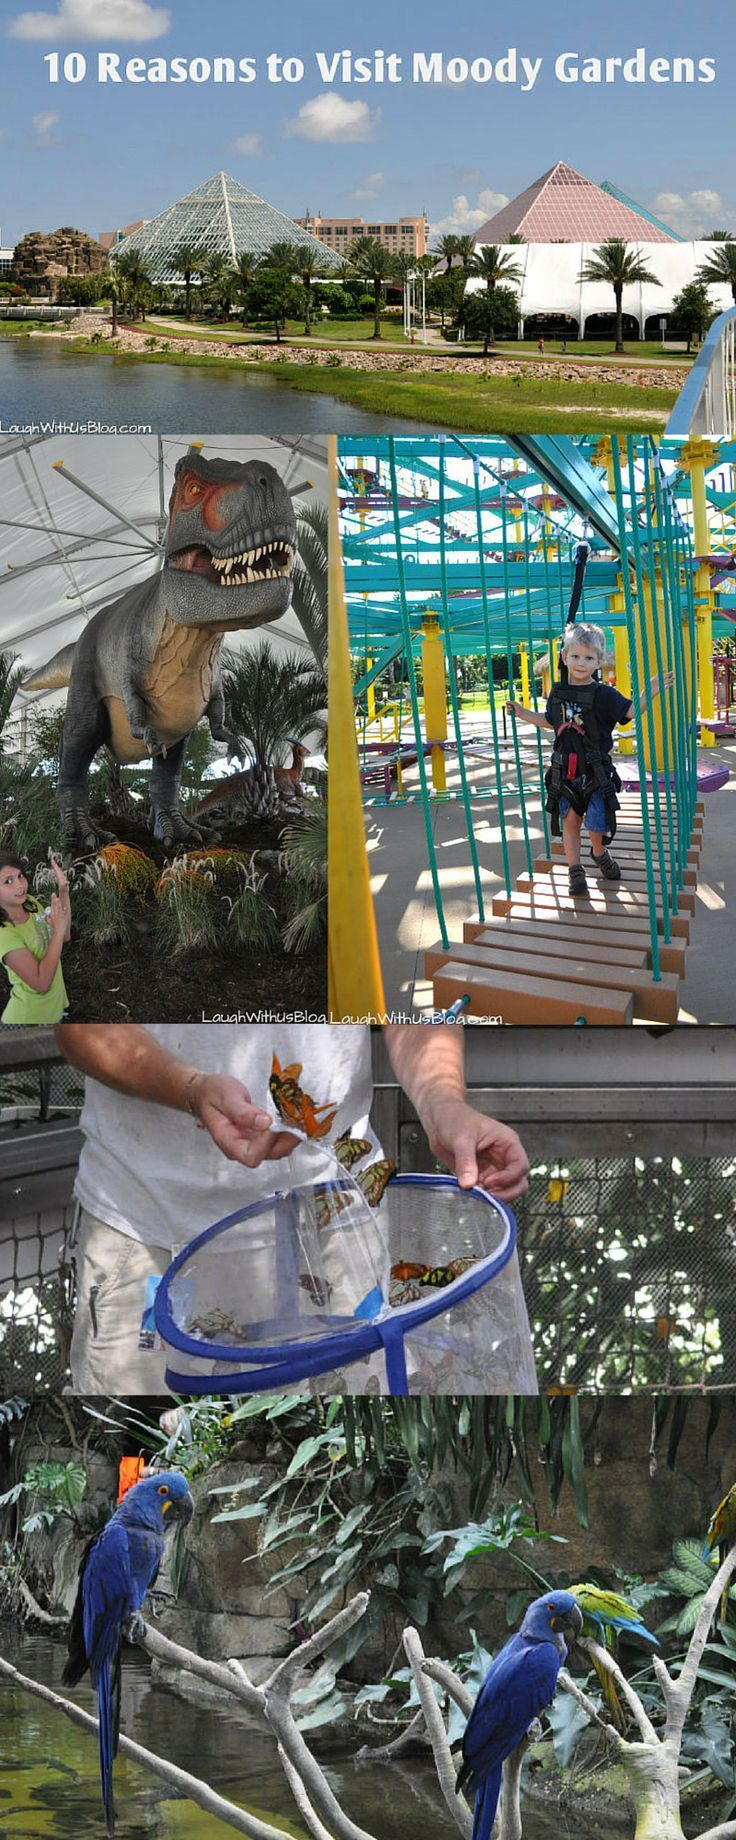 94a5058984695c1e15f59e2465b64663 - What Can You Do At Moody Gardens